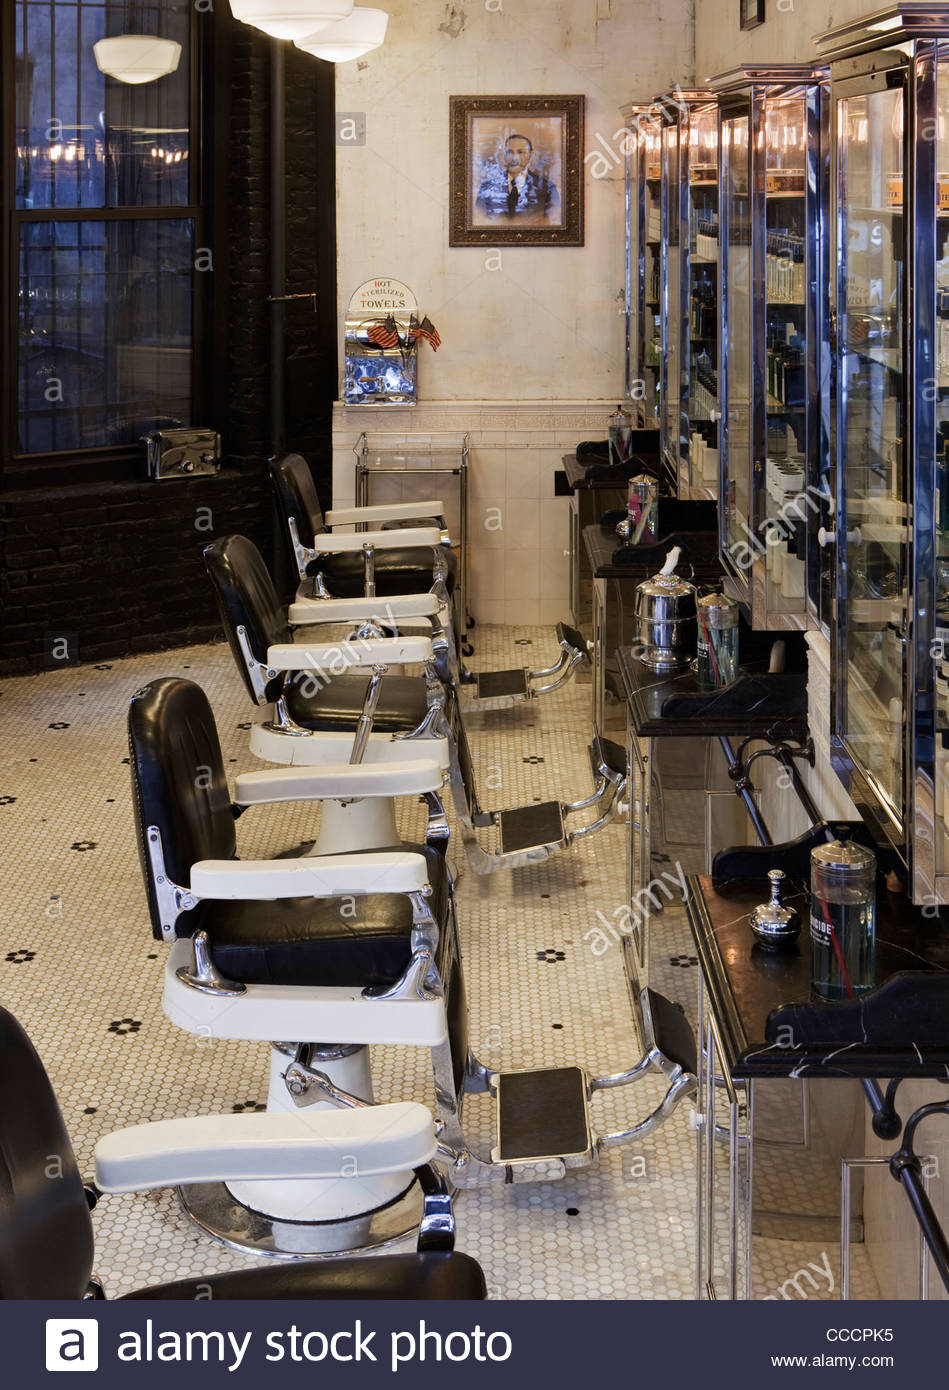 Tommy Guns Lower East Side Has Replicated The Vintage Design Of The Original Soho Salon In London, Formed In 1994. - Stock Image